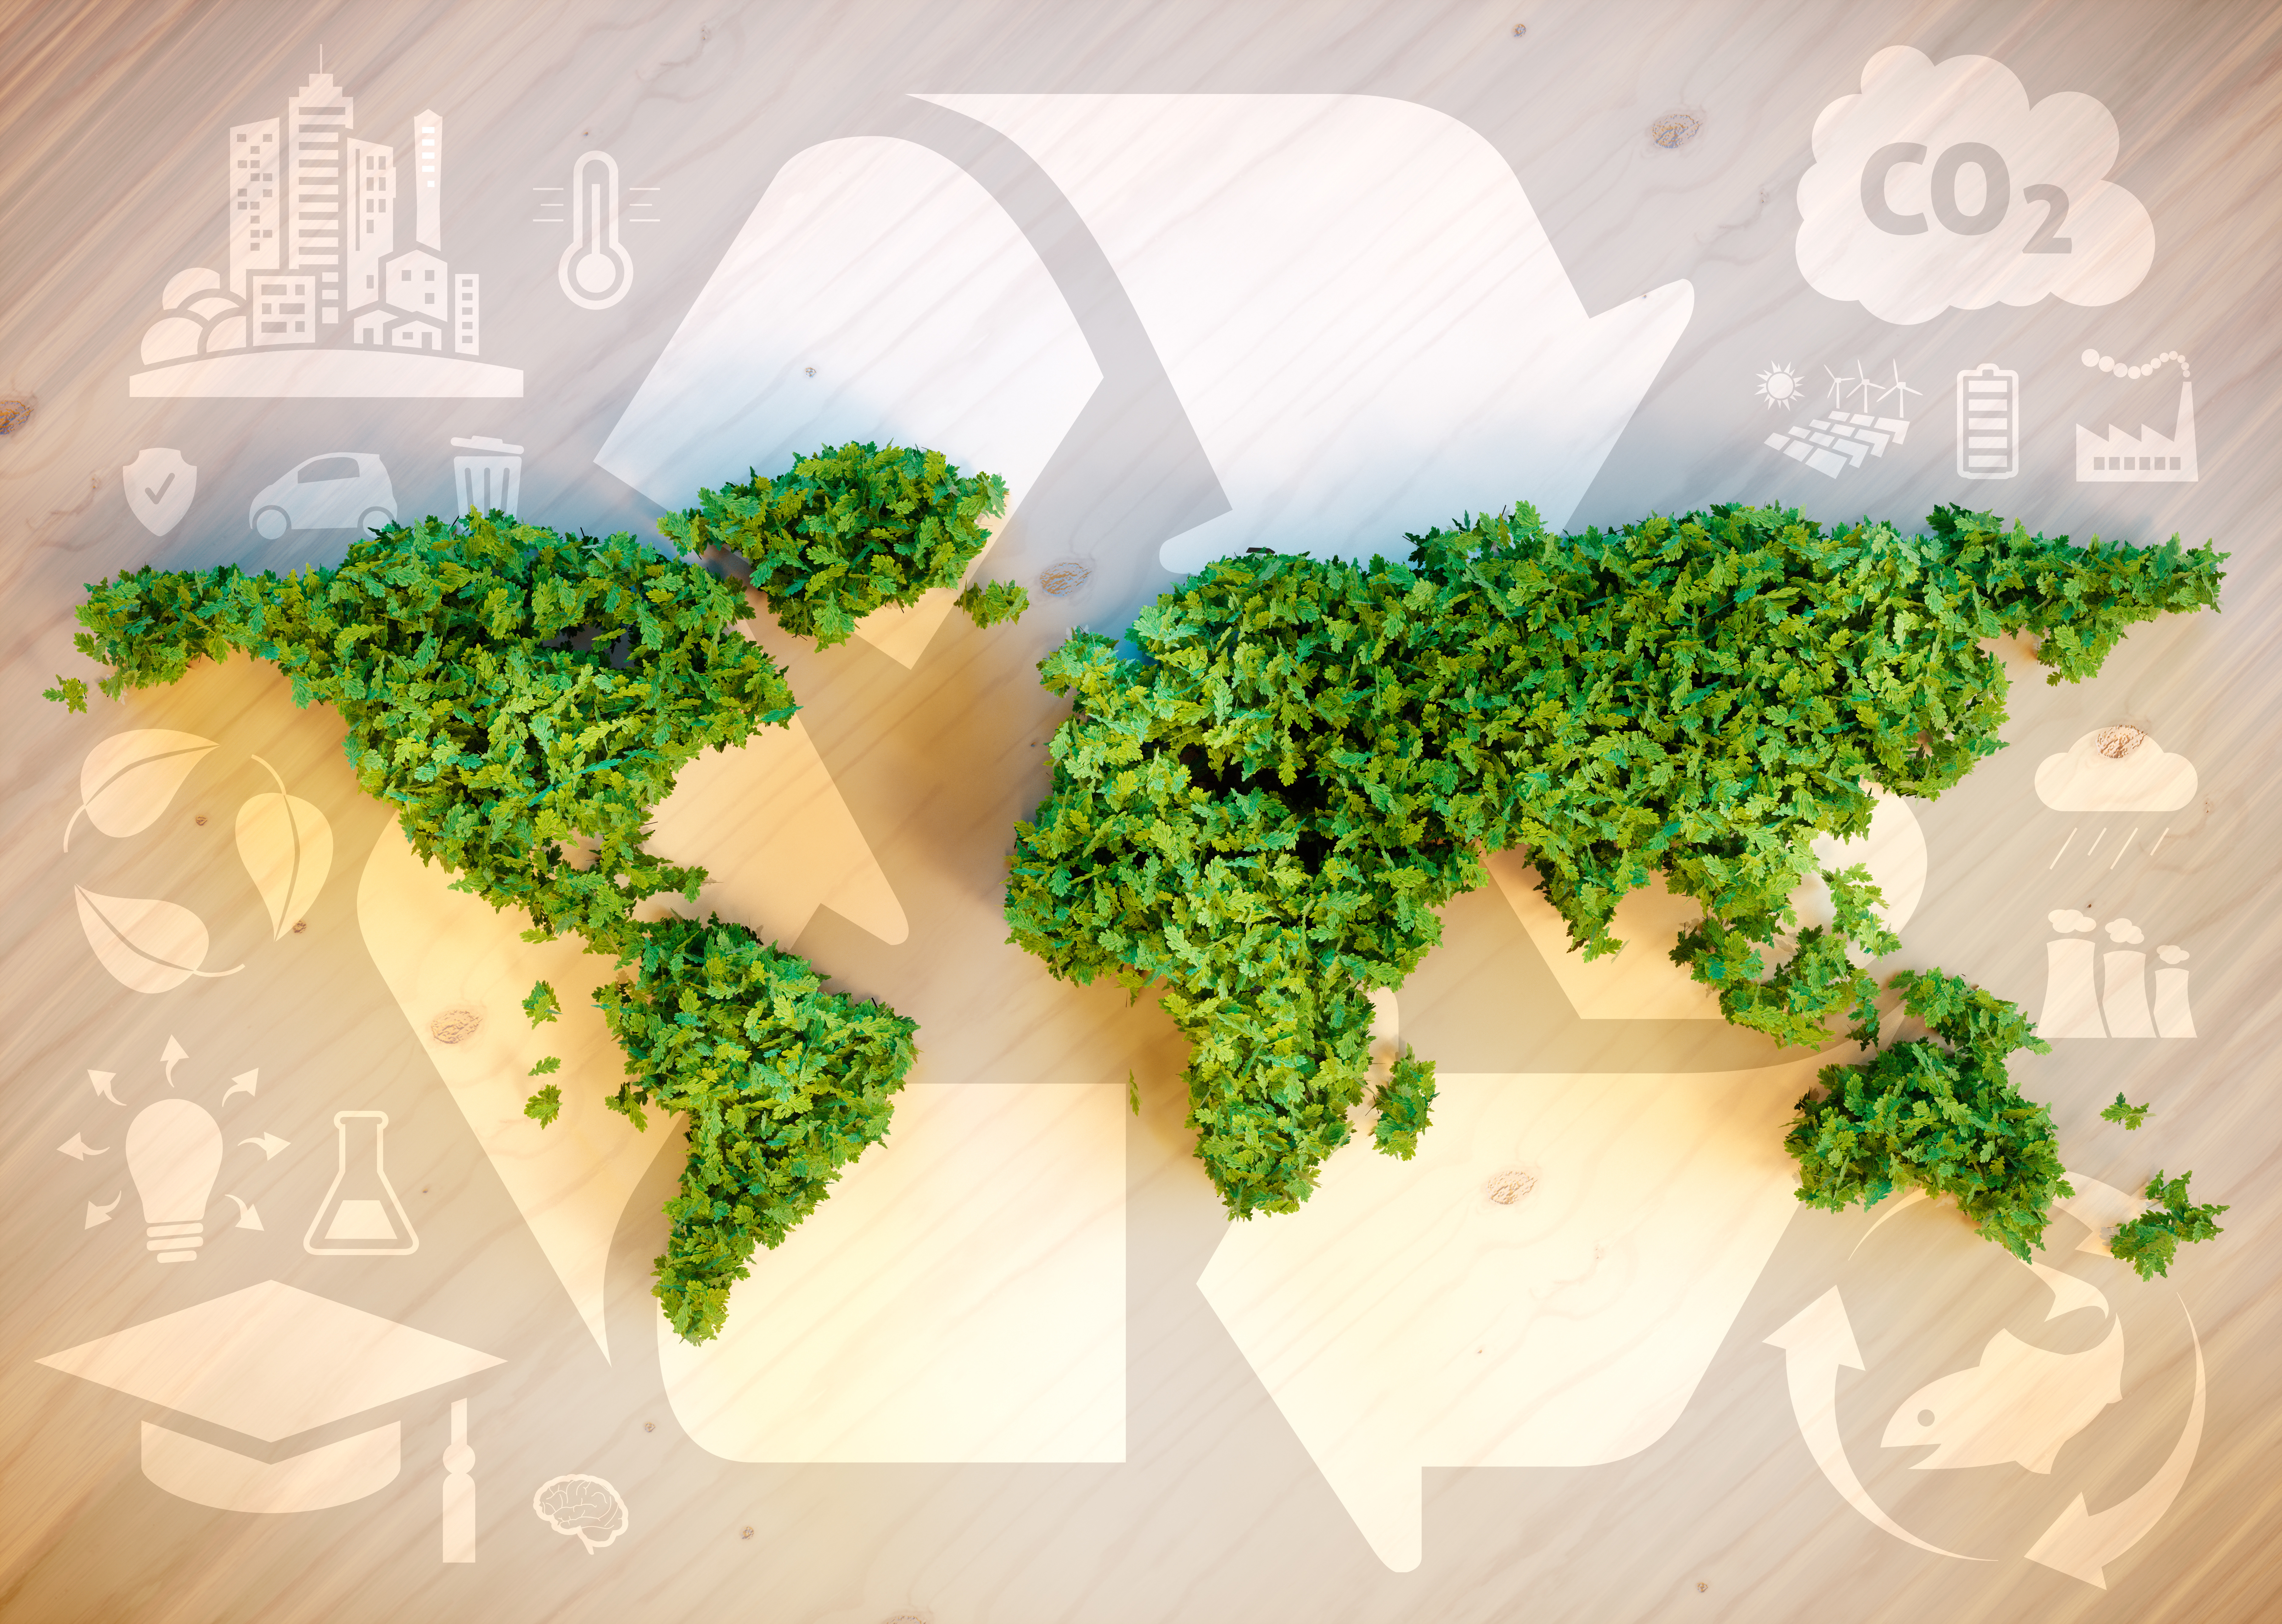 Logistics & Supply Chain Sustainability